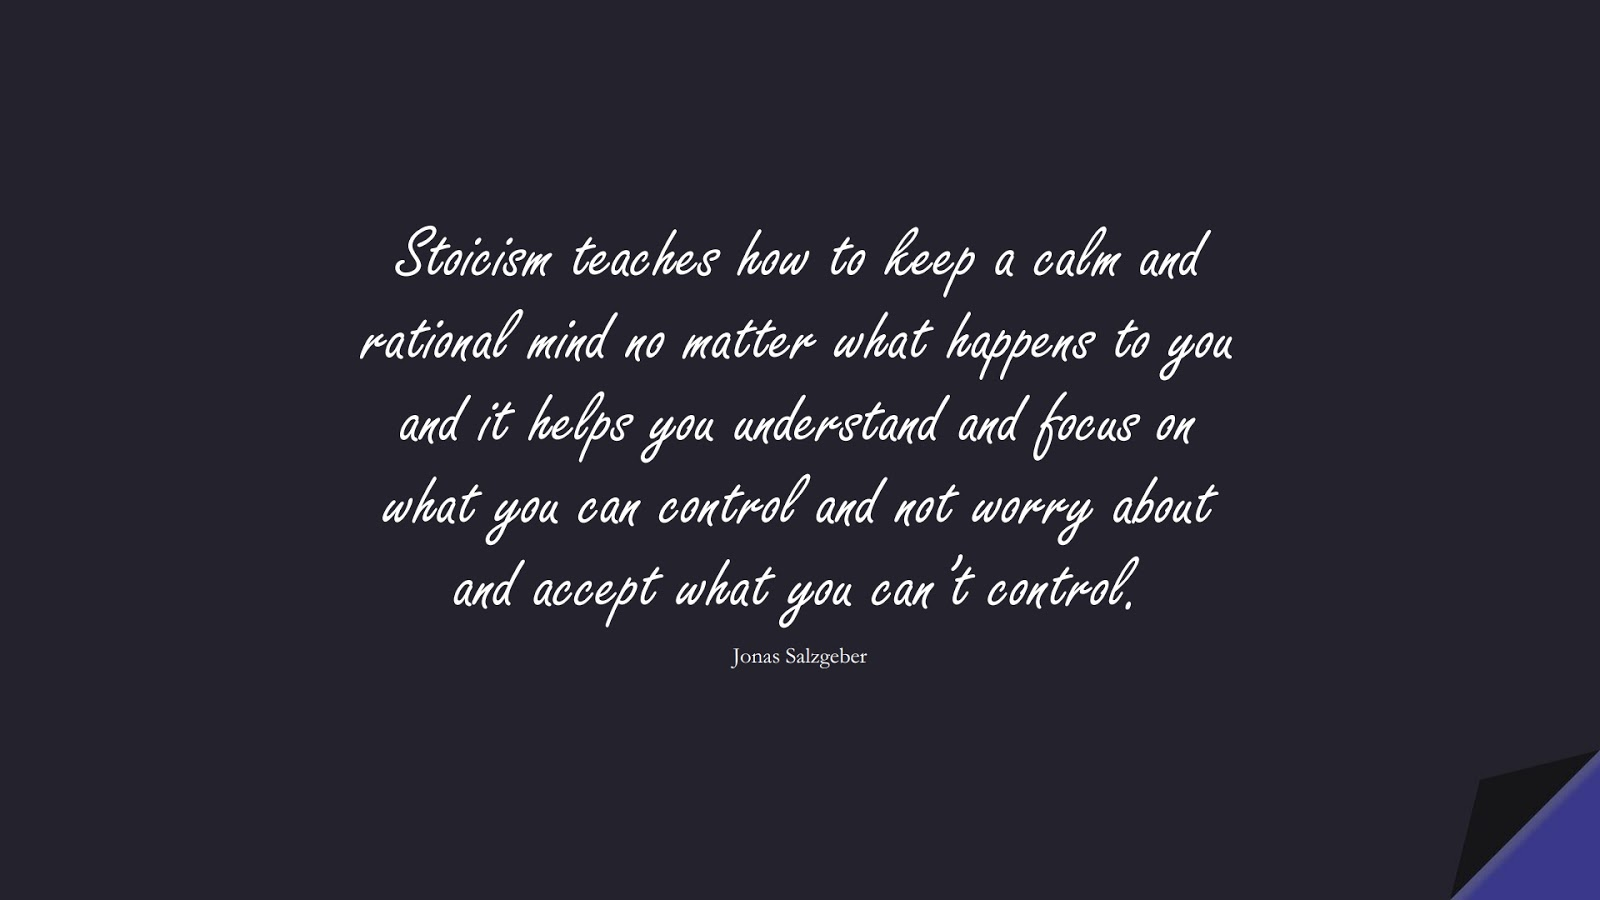 Stoicism teaches how to keep a calm and rational mind no matter what happens to you and it helps you understand and focus on what you can control and not worry about and accept what you can't control. (Jonas Salzgeber);  #StoicQuotes